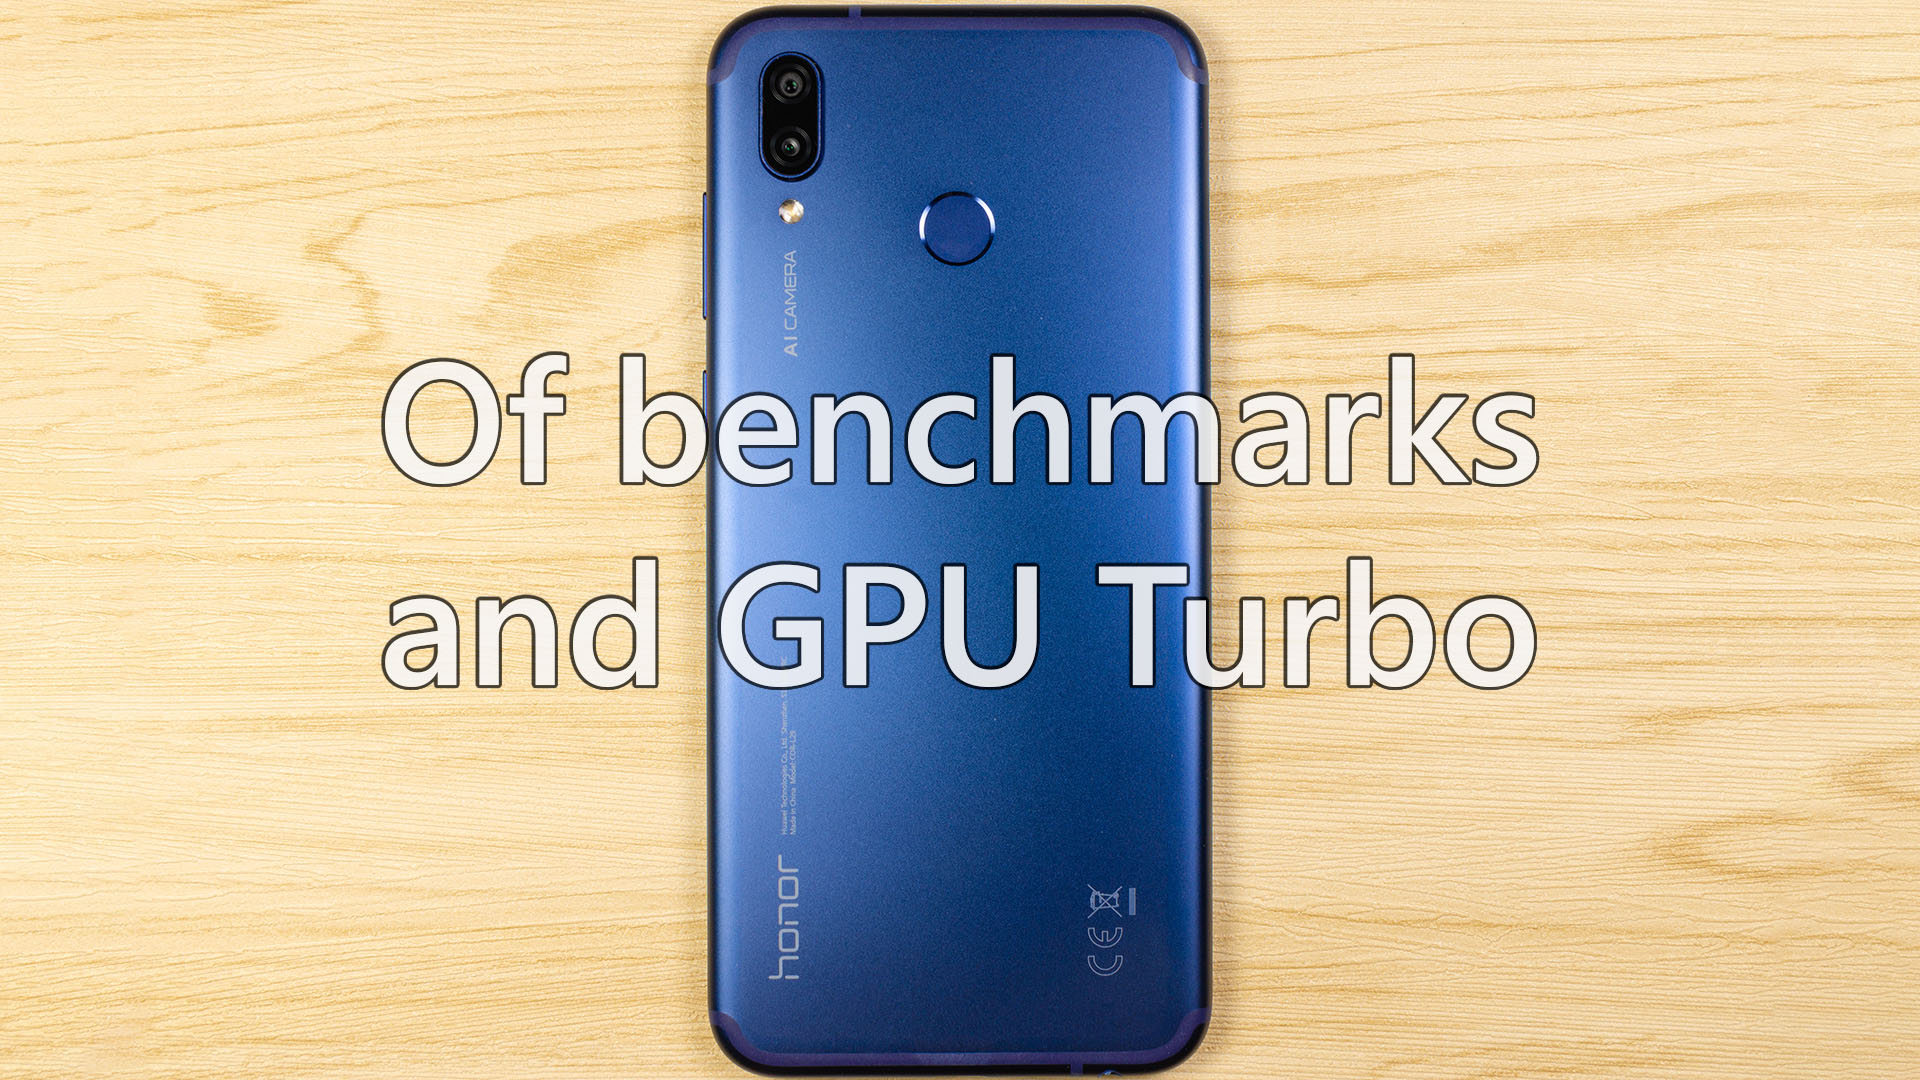 UPDATED] Cheating Benchmarks & Deception: Why Honor Play Overheats